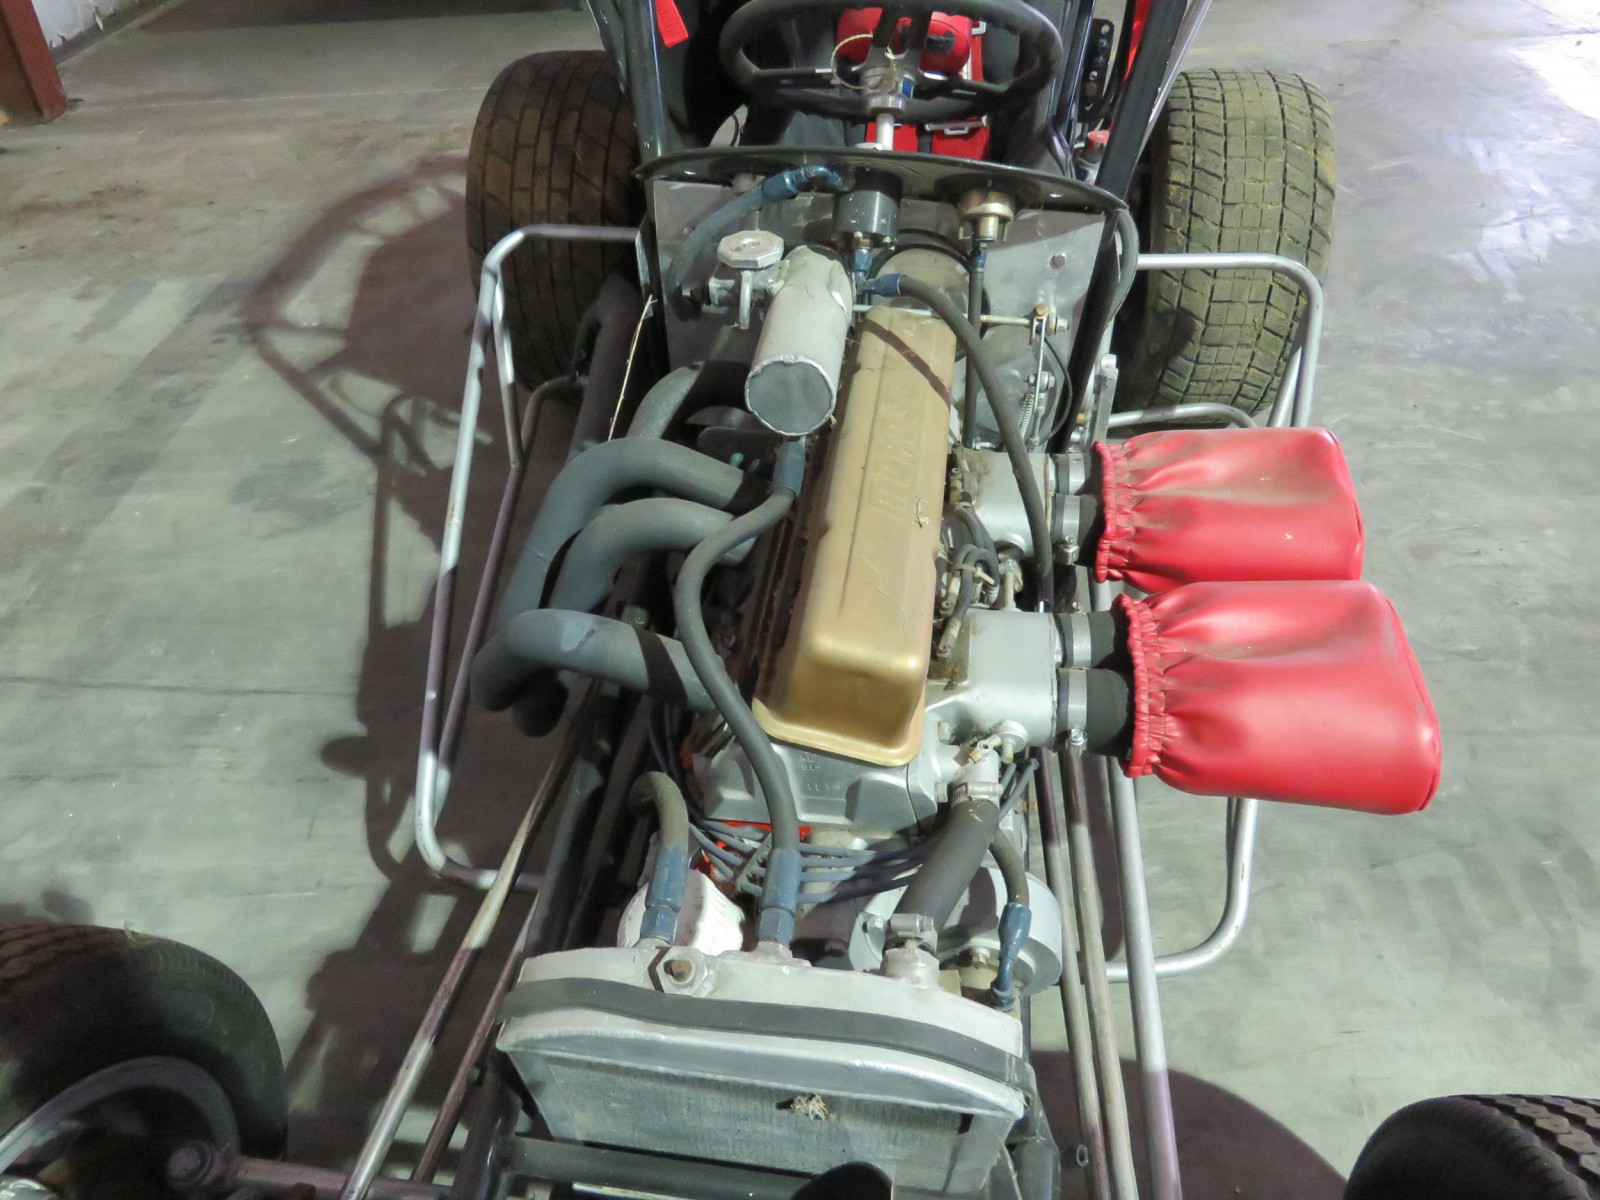 1970 Edmunds Sesco Midget Race Cart - Image 12